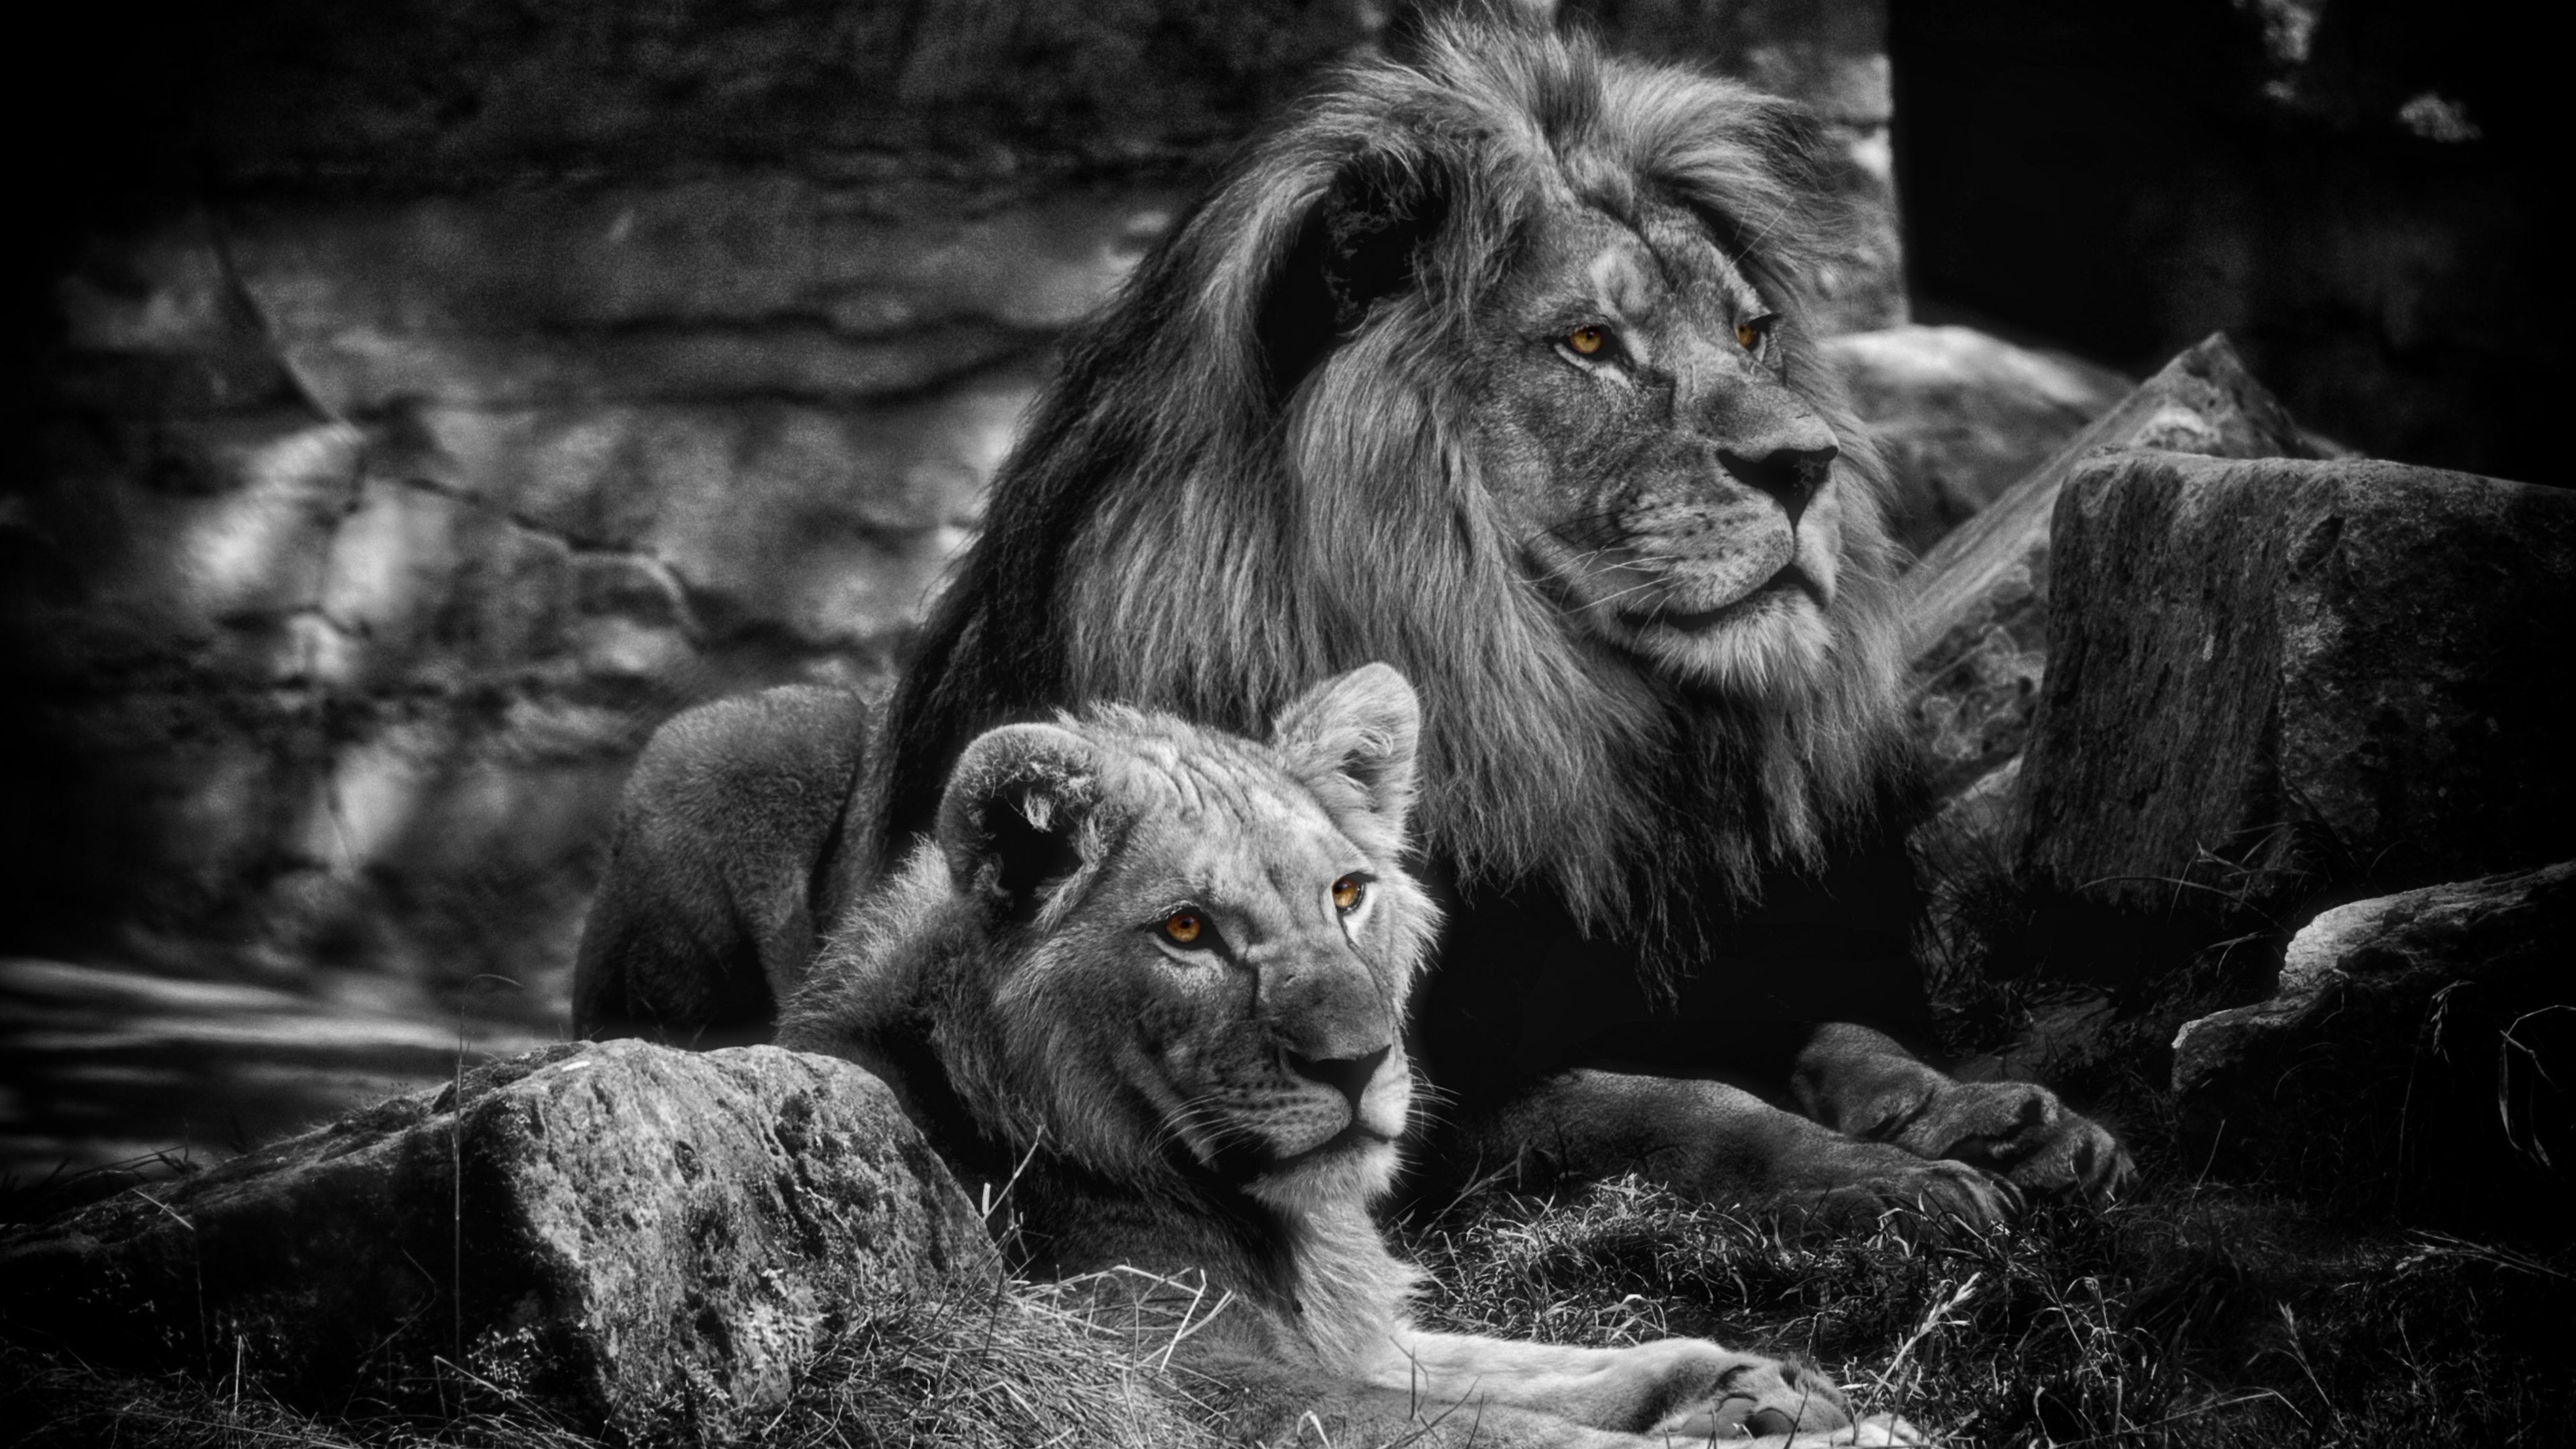 Löwen Wallpaper - Male And Female Lion Black And White , HD Wallpaper & Backgrounds